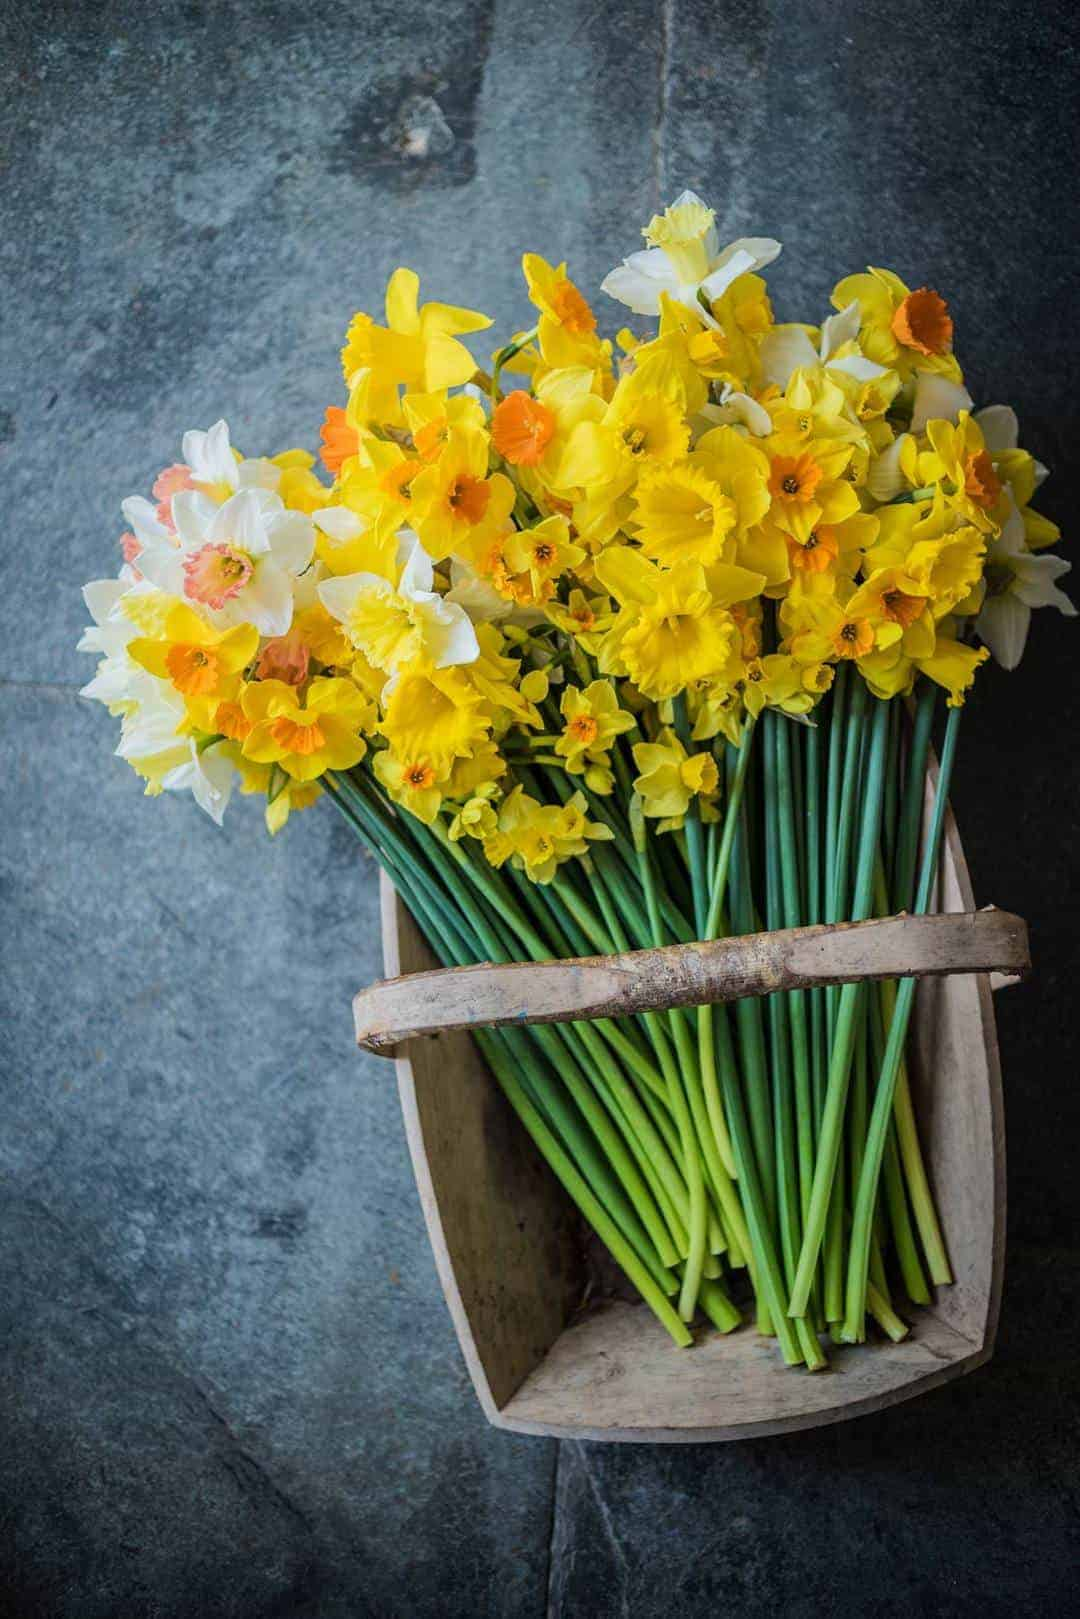 love the rustic look of yellow daffodils and white narcissi grouped informally in a rustic wooden trug. Click through for more spring ideas you'll love